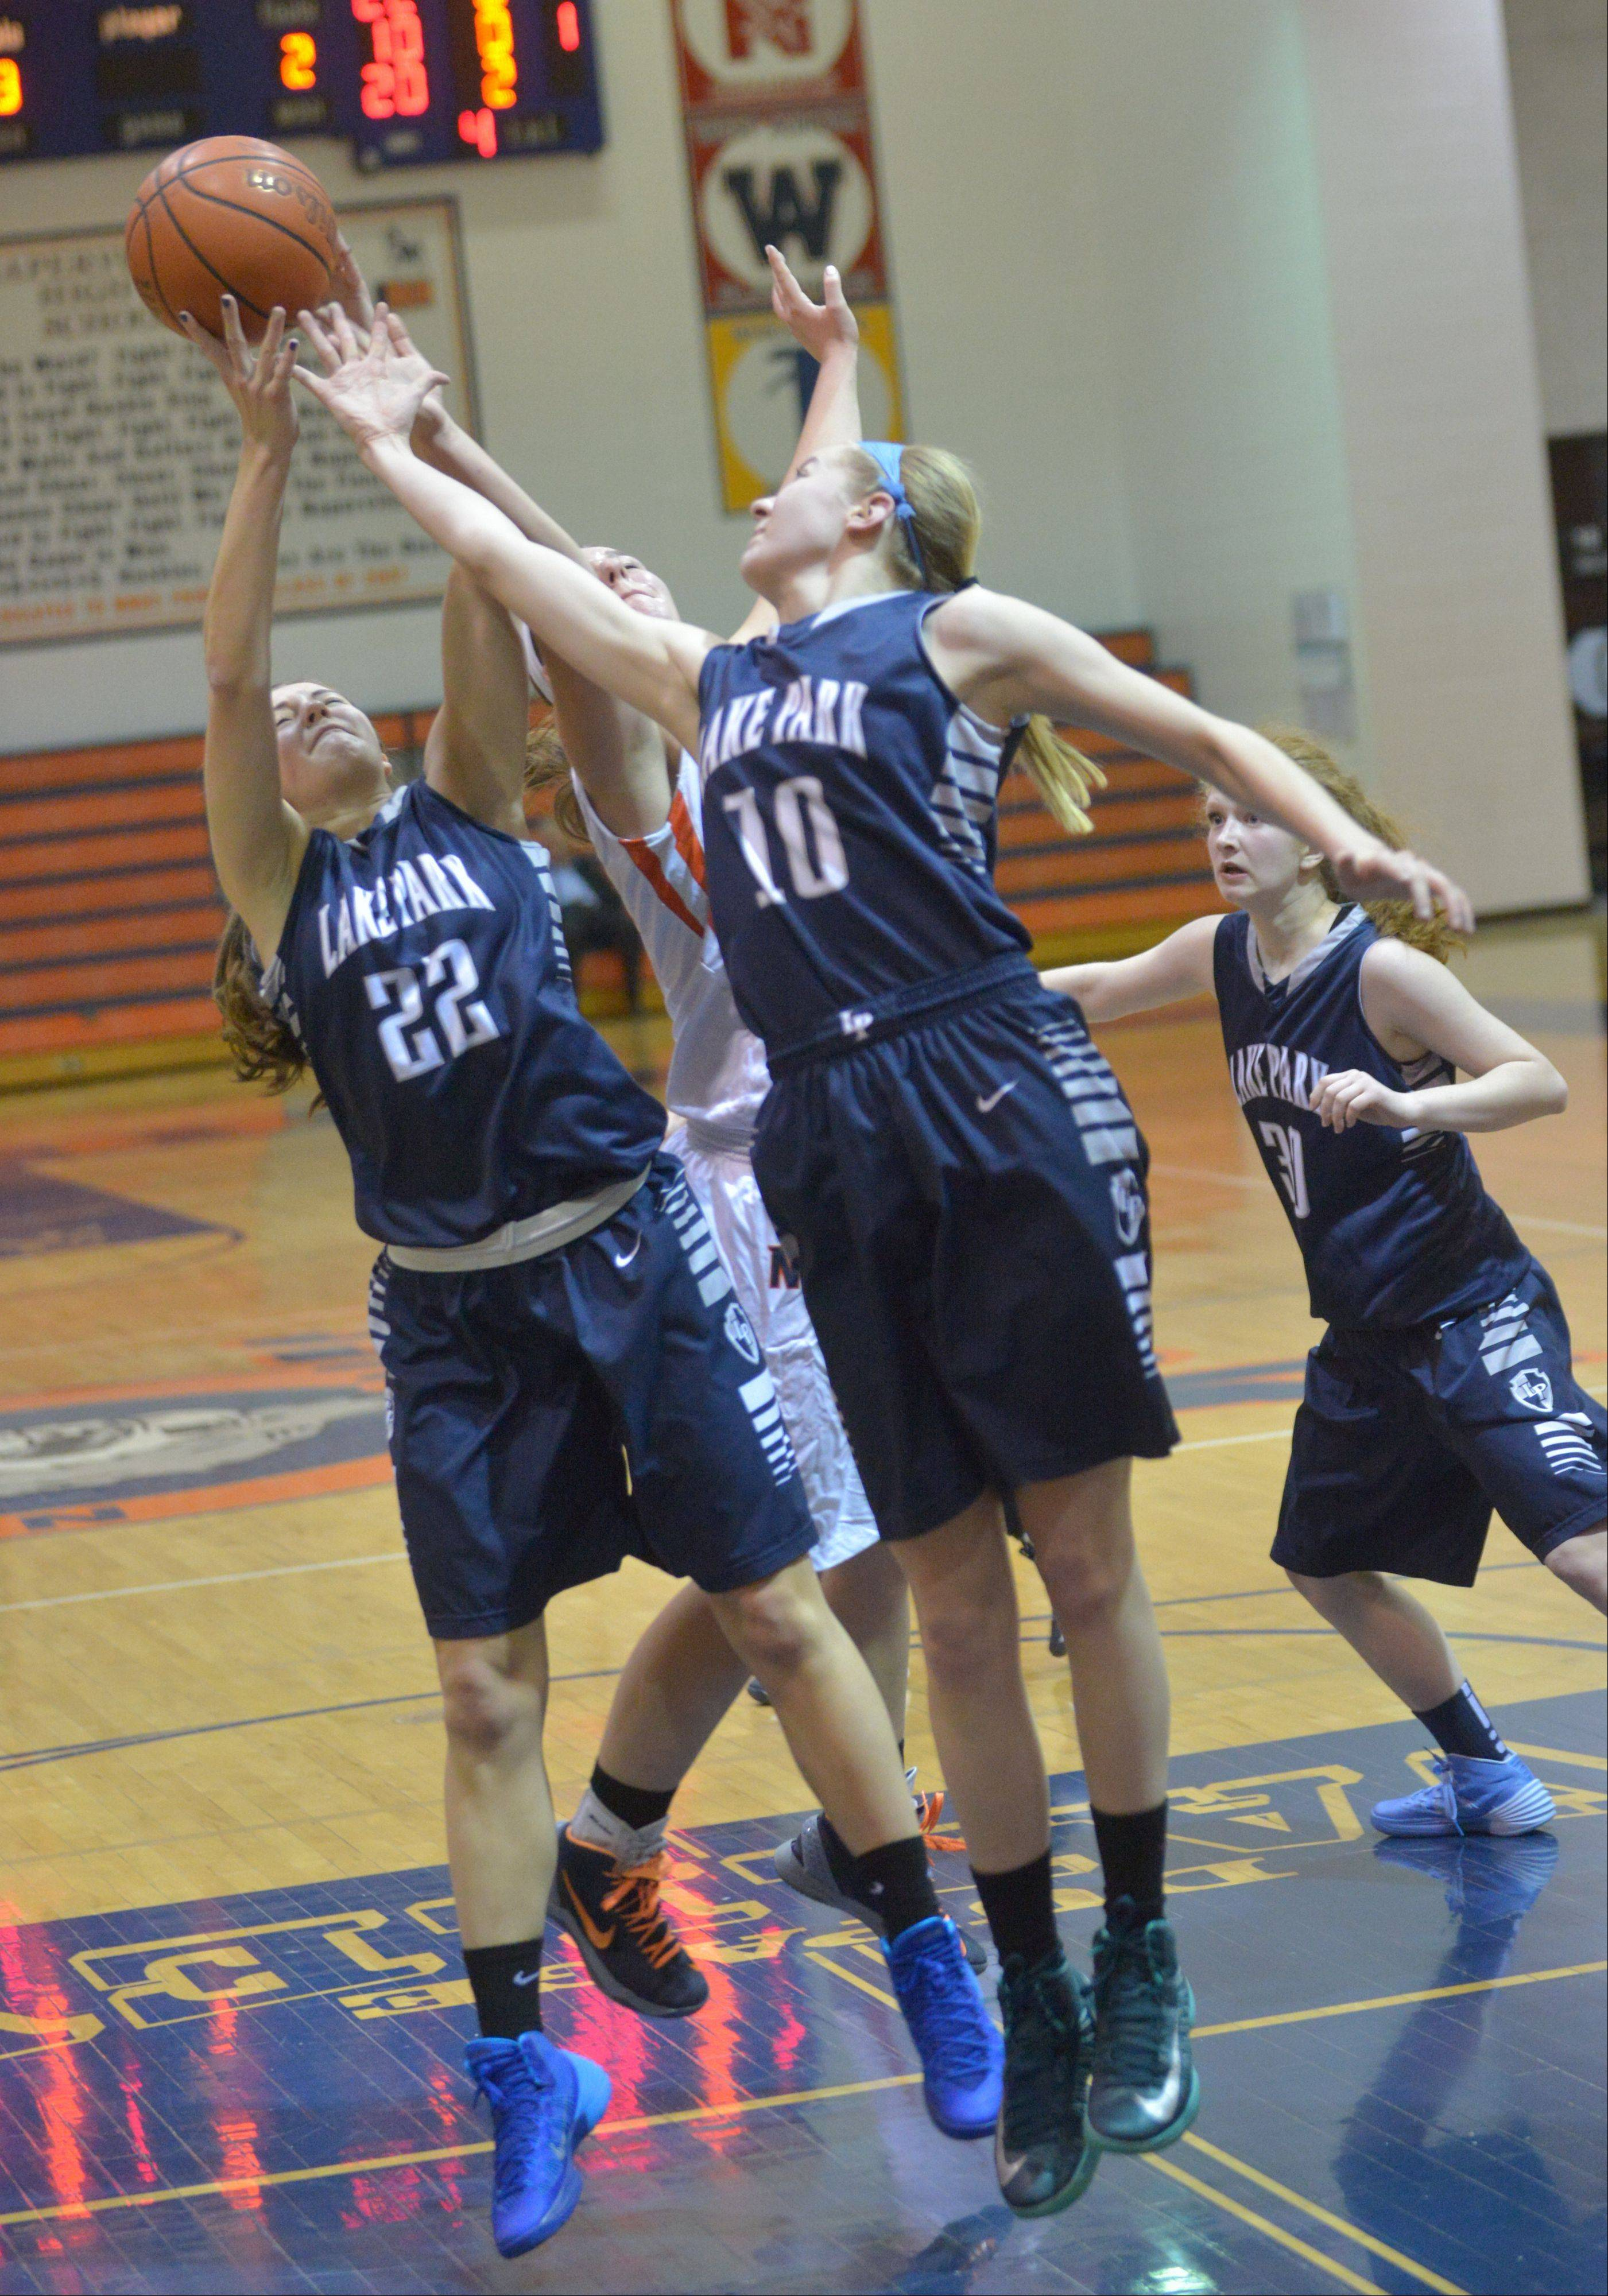 Photos from the Lake Park at Naperville North girls basketball game Thursday, Jan. 9.